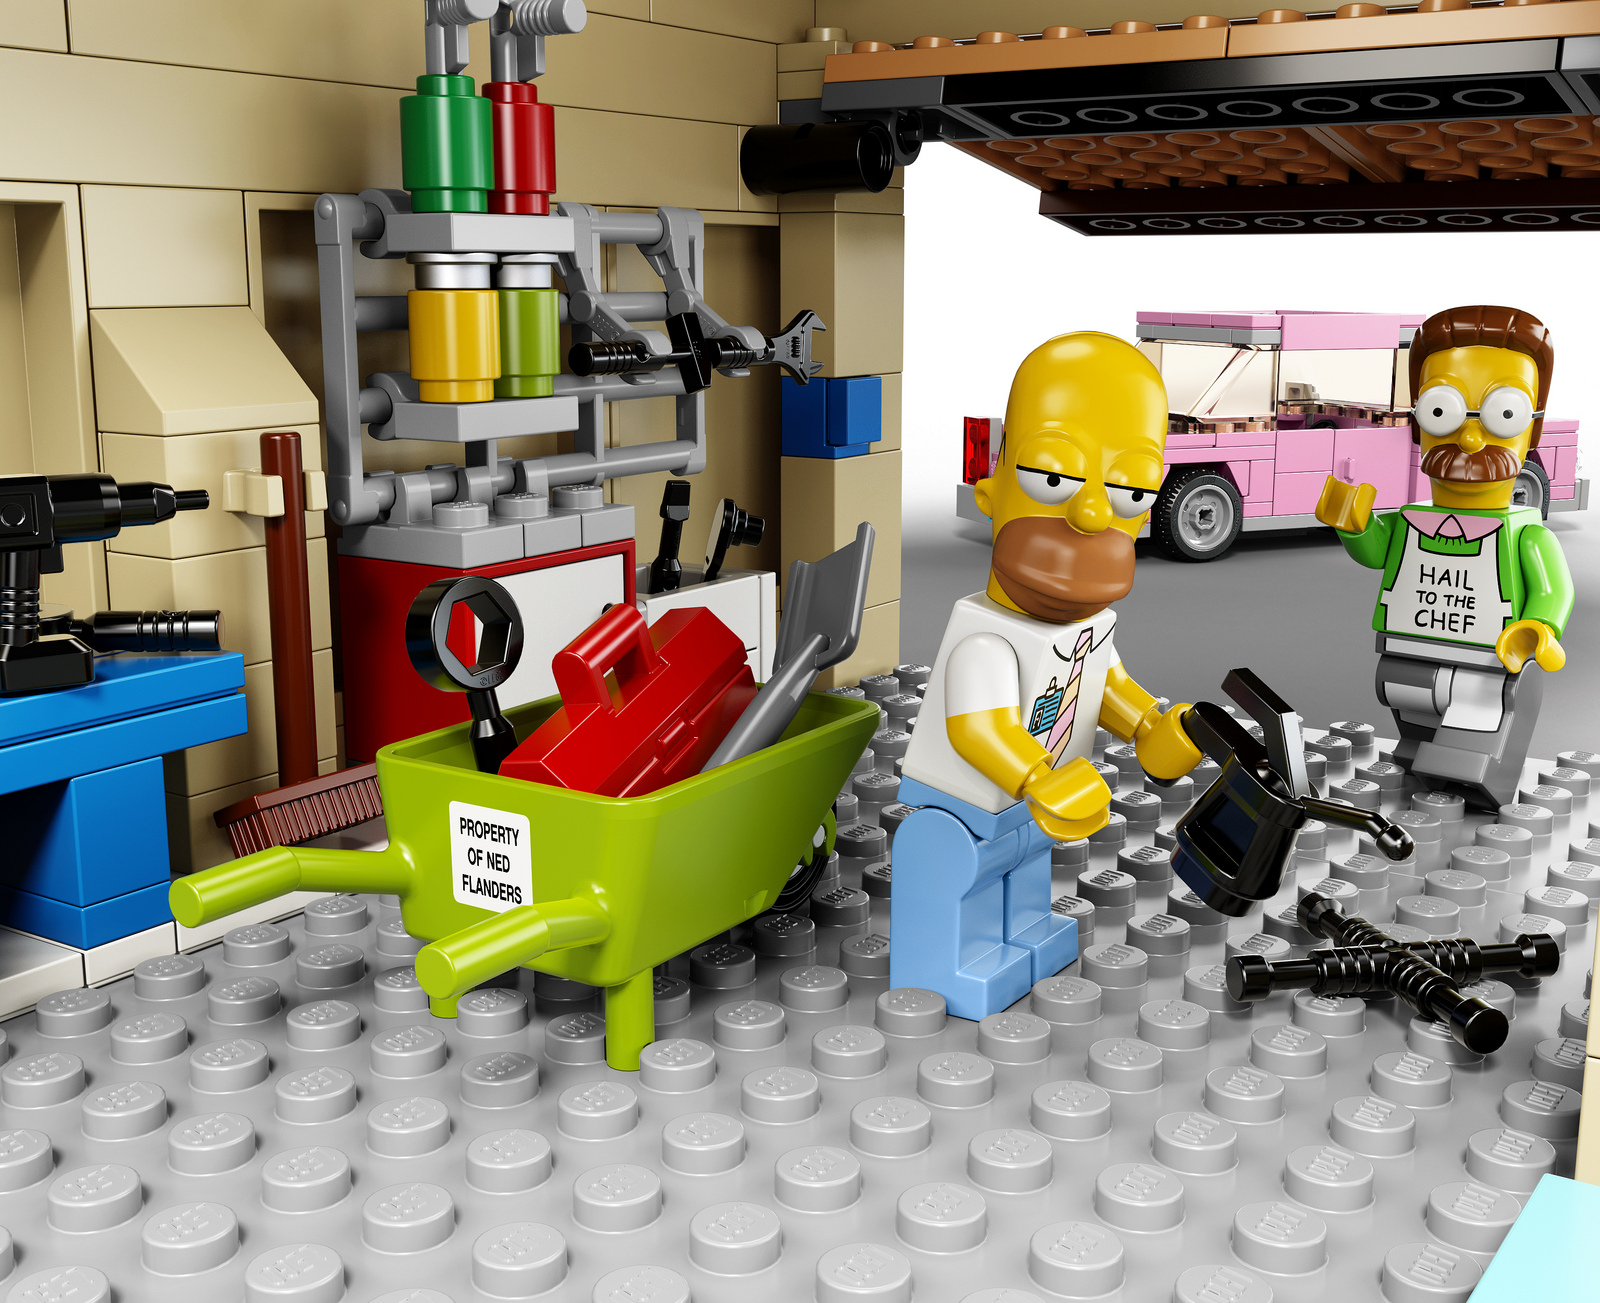 le kit lego officiel de la maison des simpsons. Black Bedroom Furniture Sets. Home Design Ideas